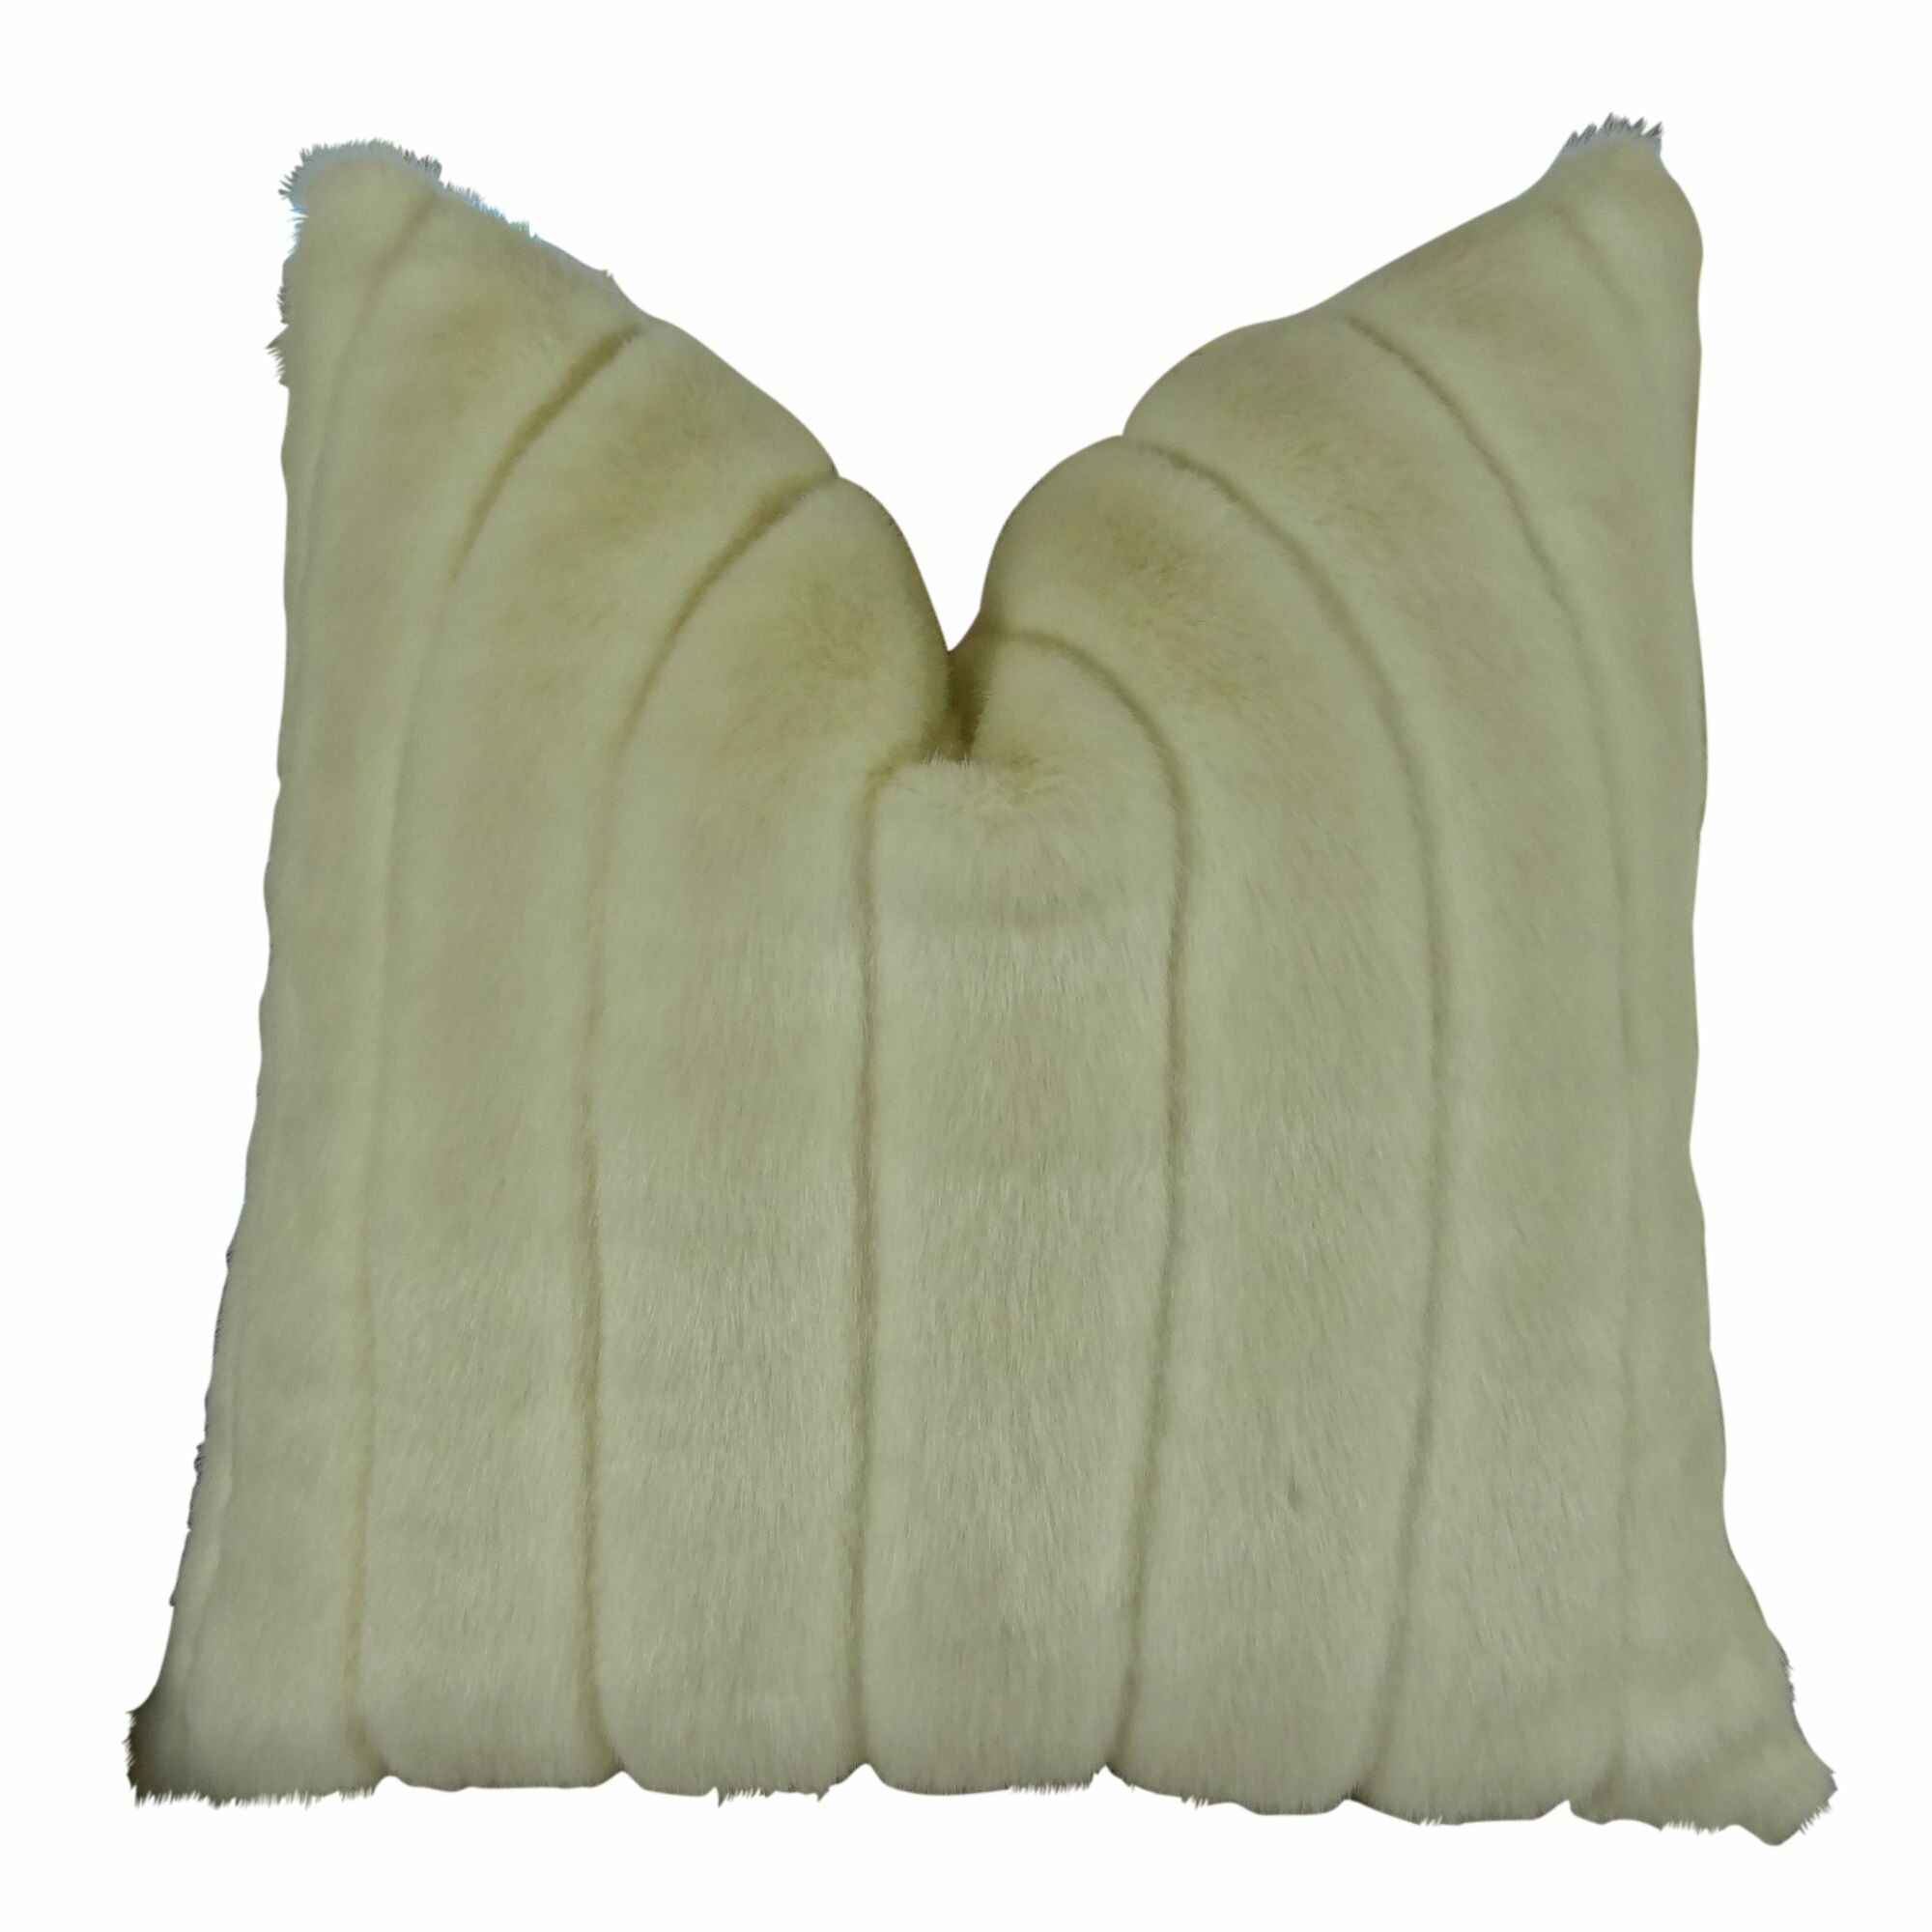 Montford Grooved Mink Faux Fur Pillow Fill Material: Cover Only - No Insert, Size: 18